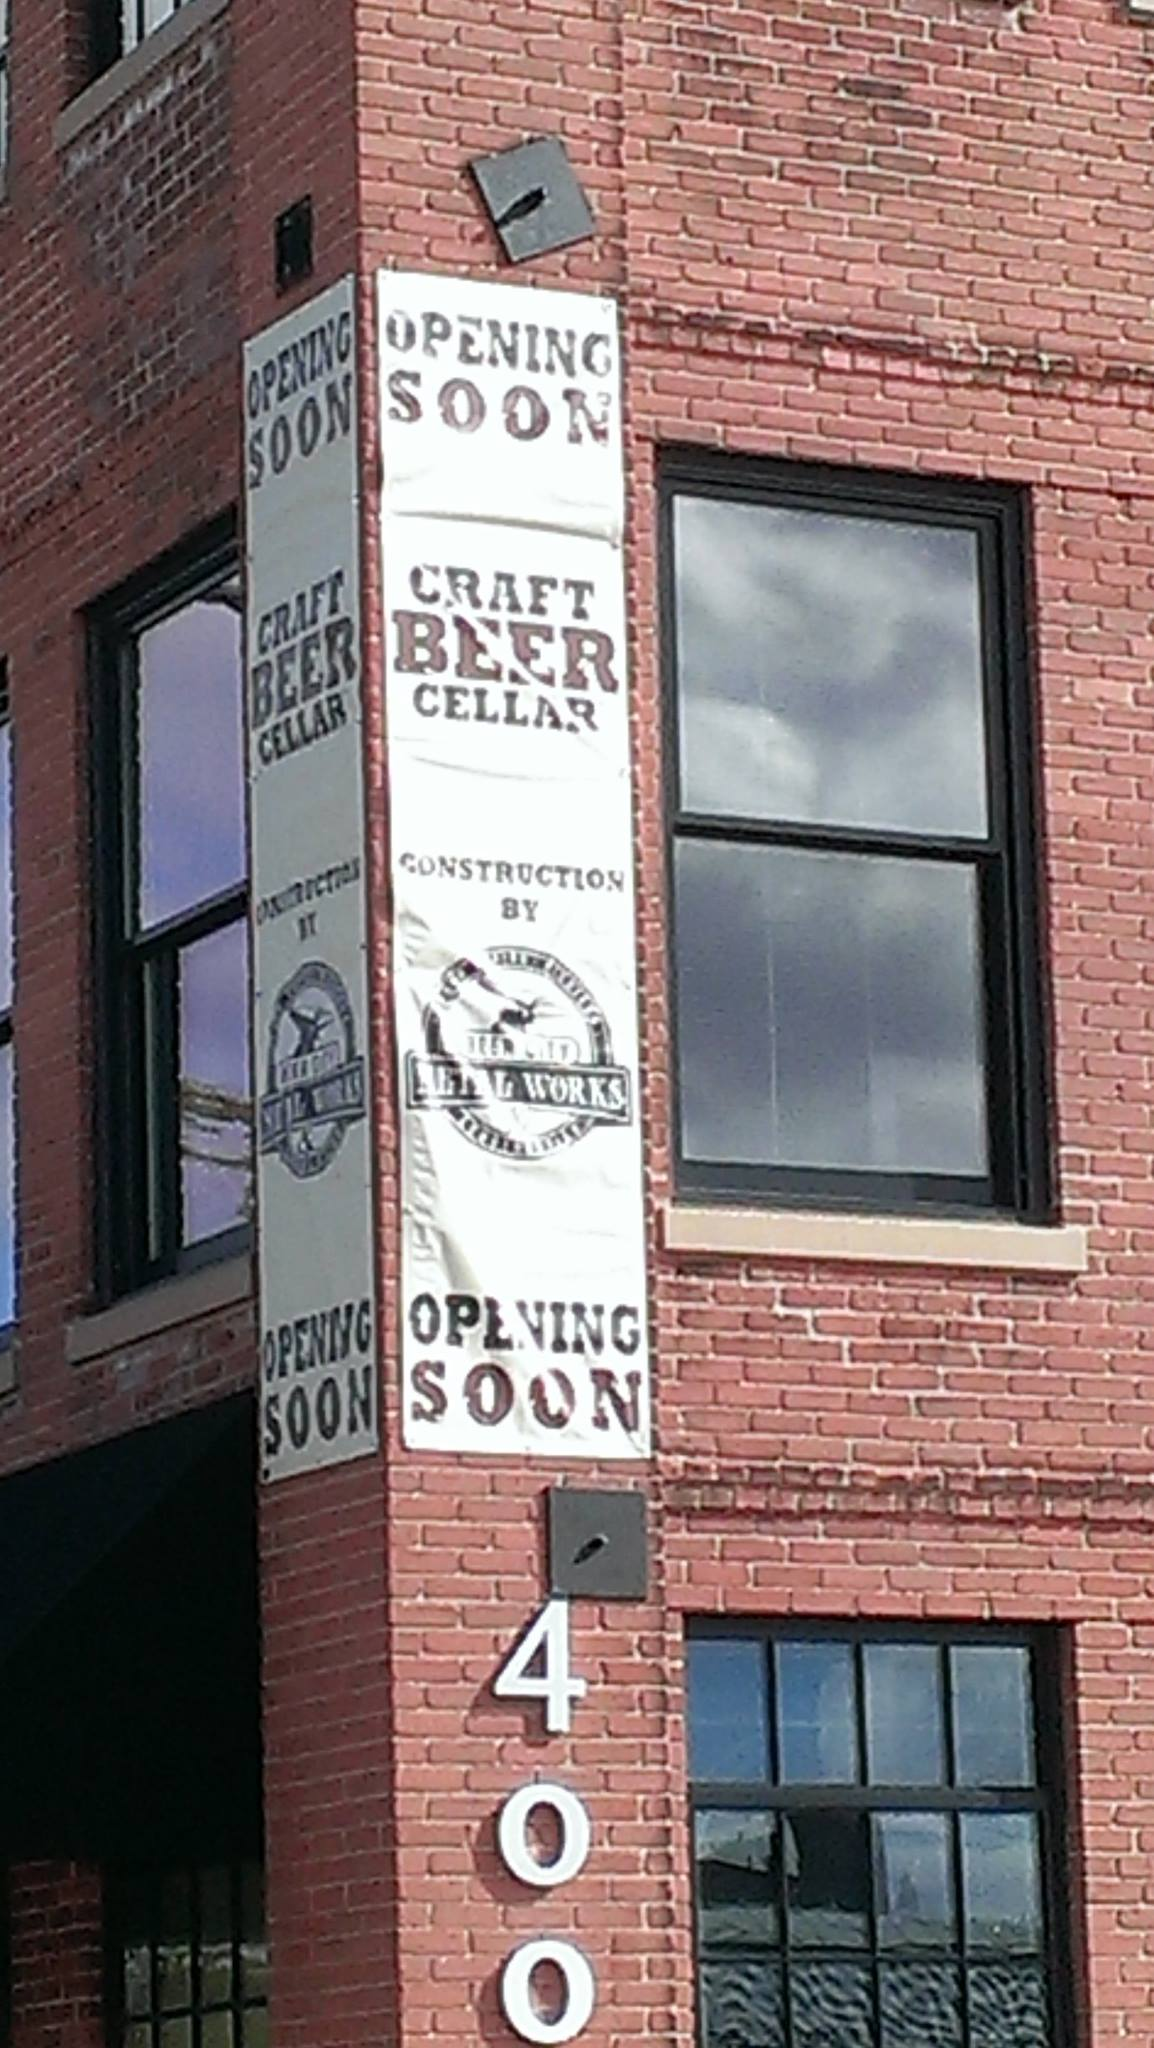 Craft Beer Cellar Opening Soon